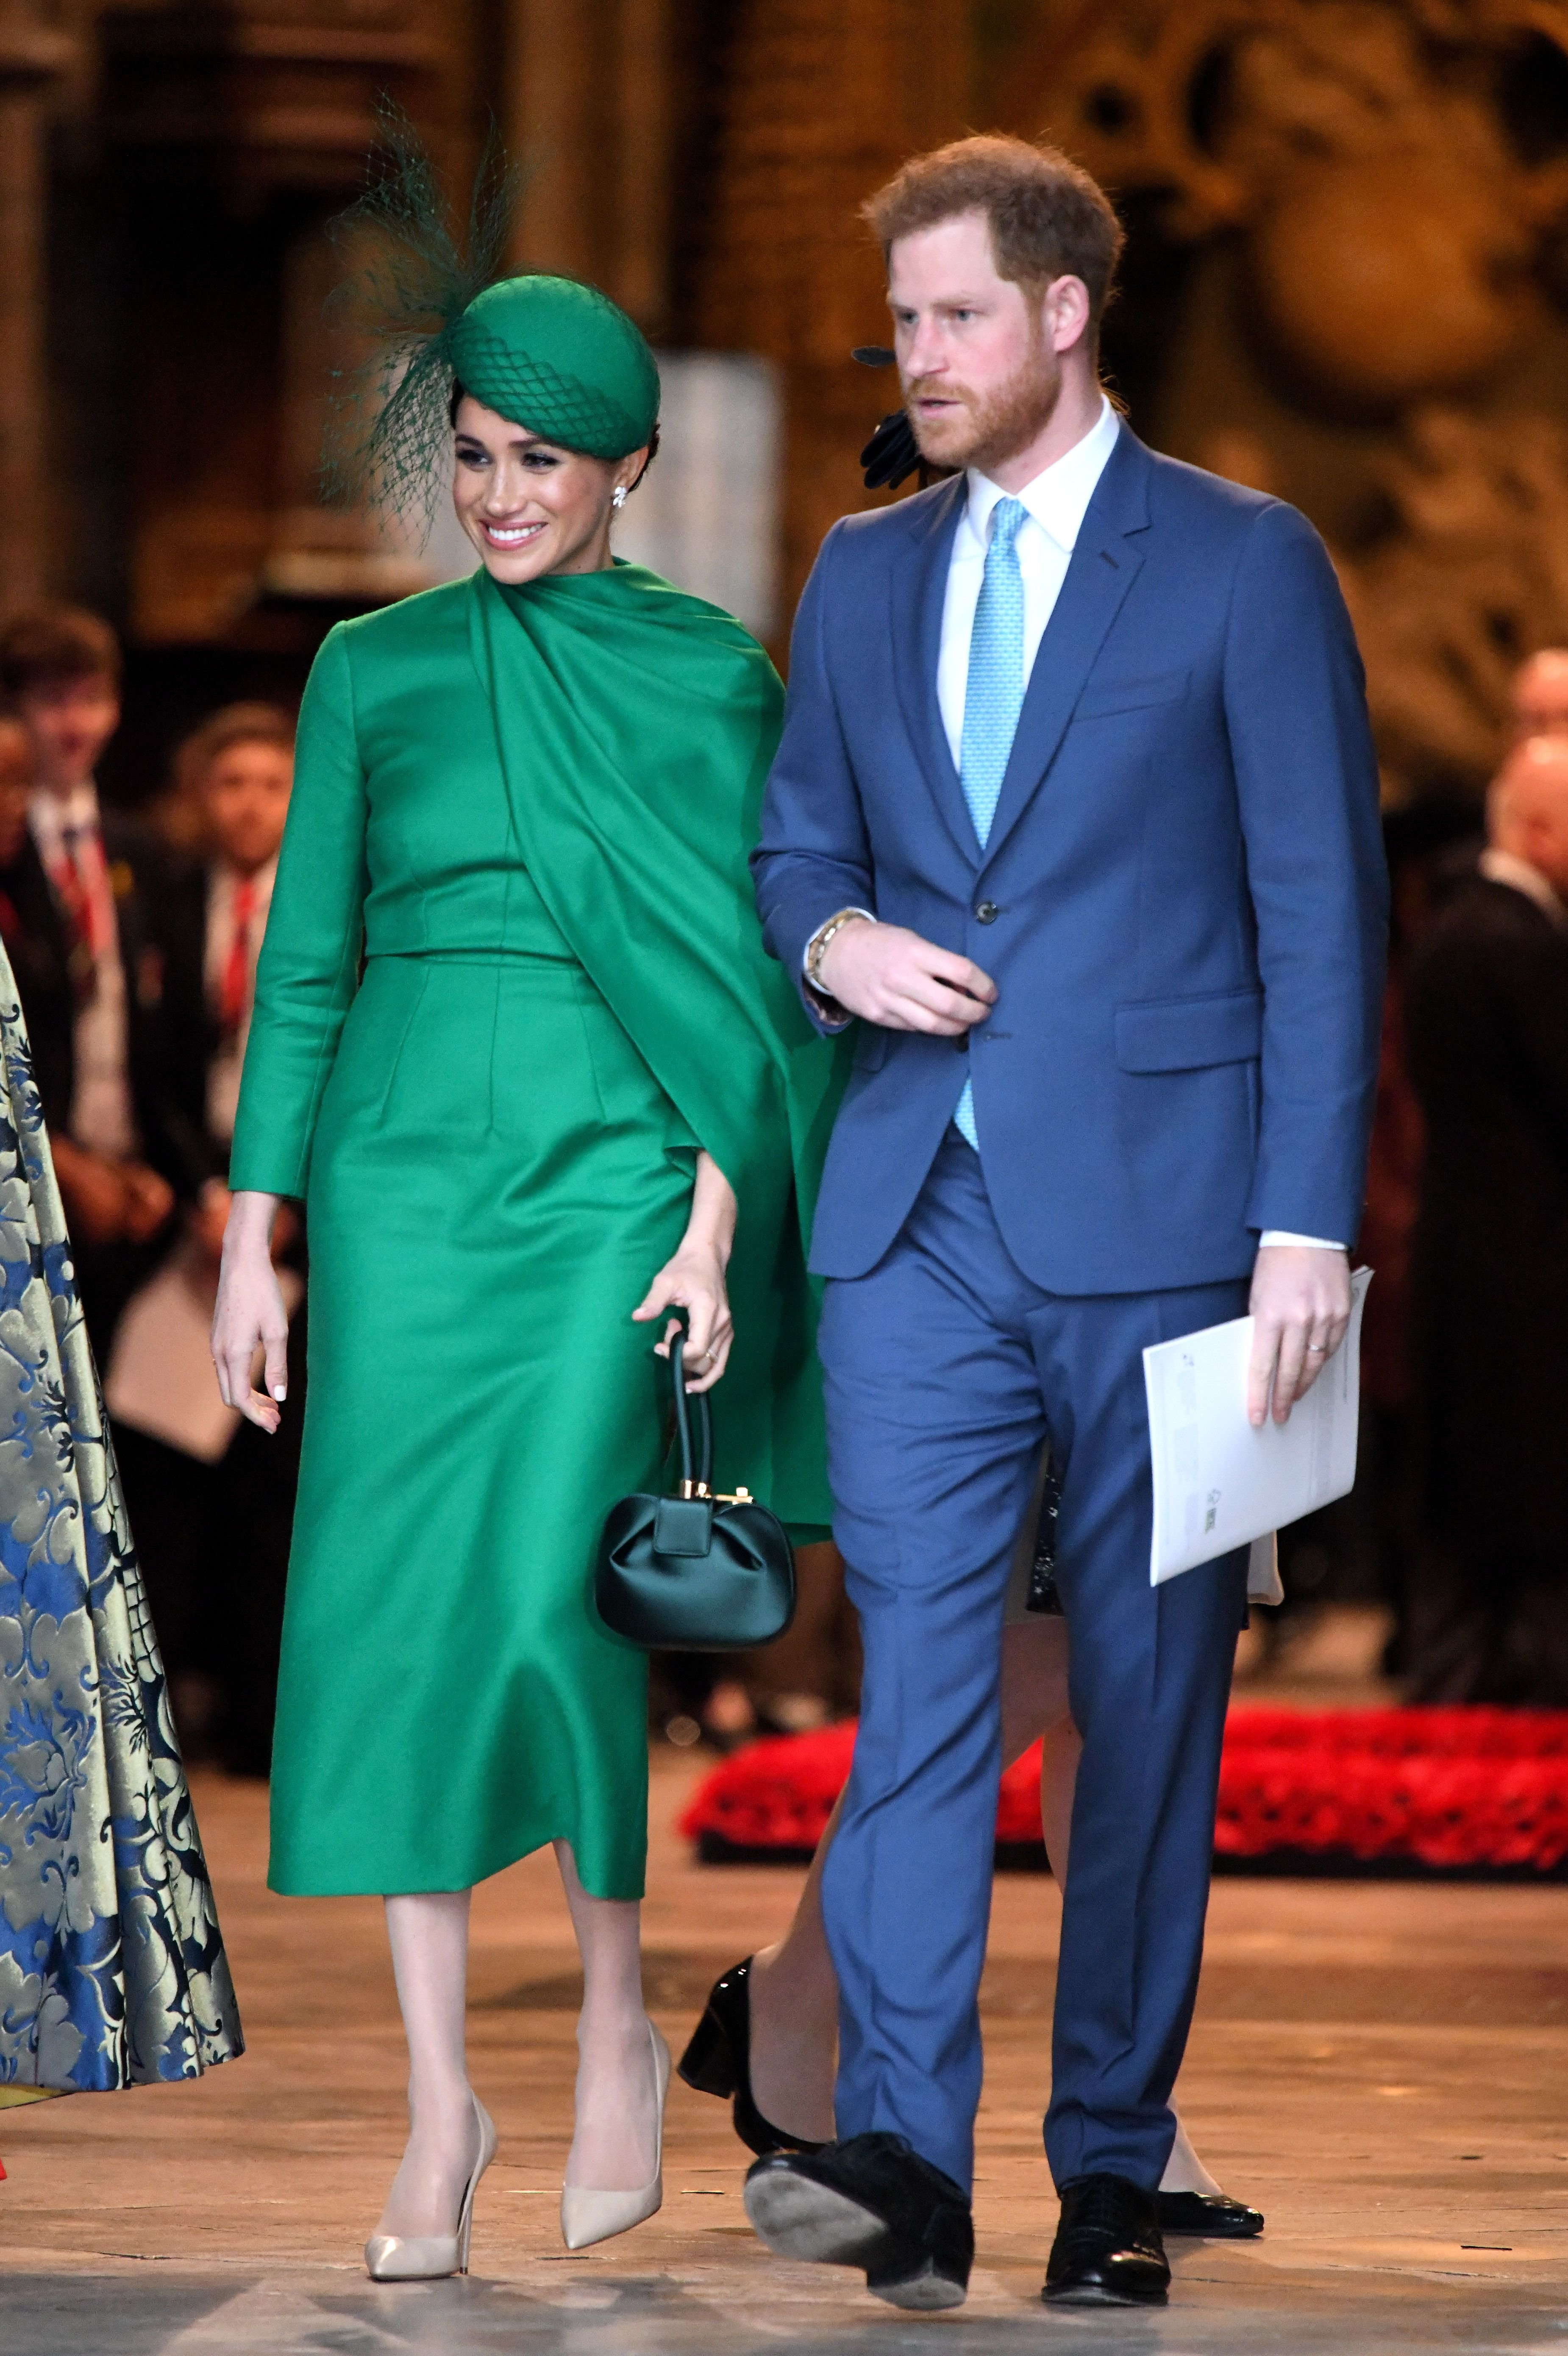 Prince Harry, Duke of Sussex and Meghan, Duchess of Sussex depart after attending the Commonwealth Day Service 2020 at Westminster Abbey on March 09, 2020. | Getty Images